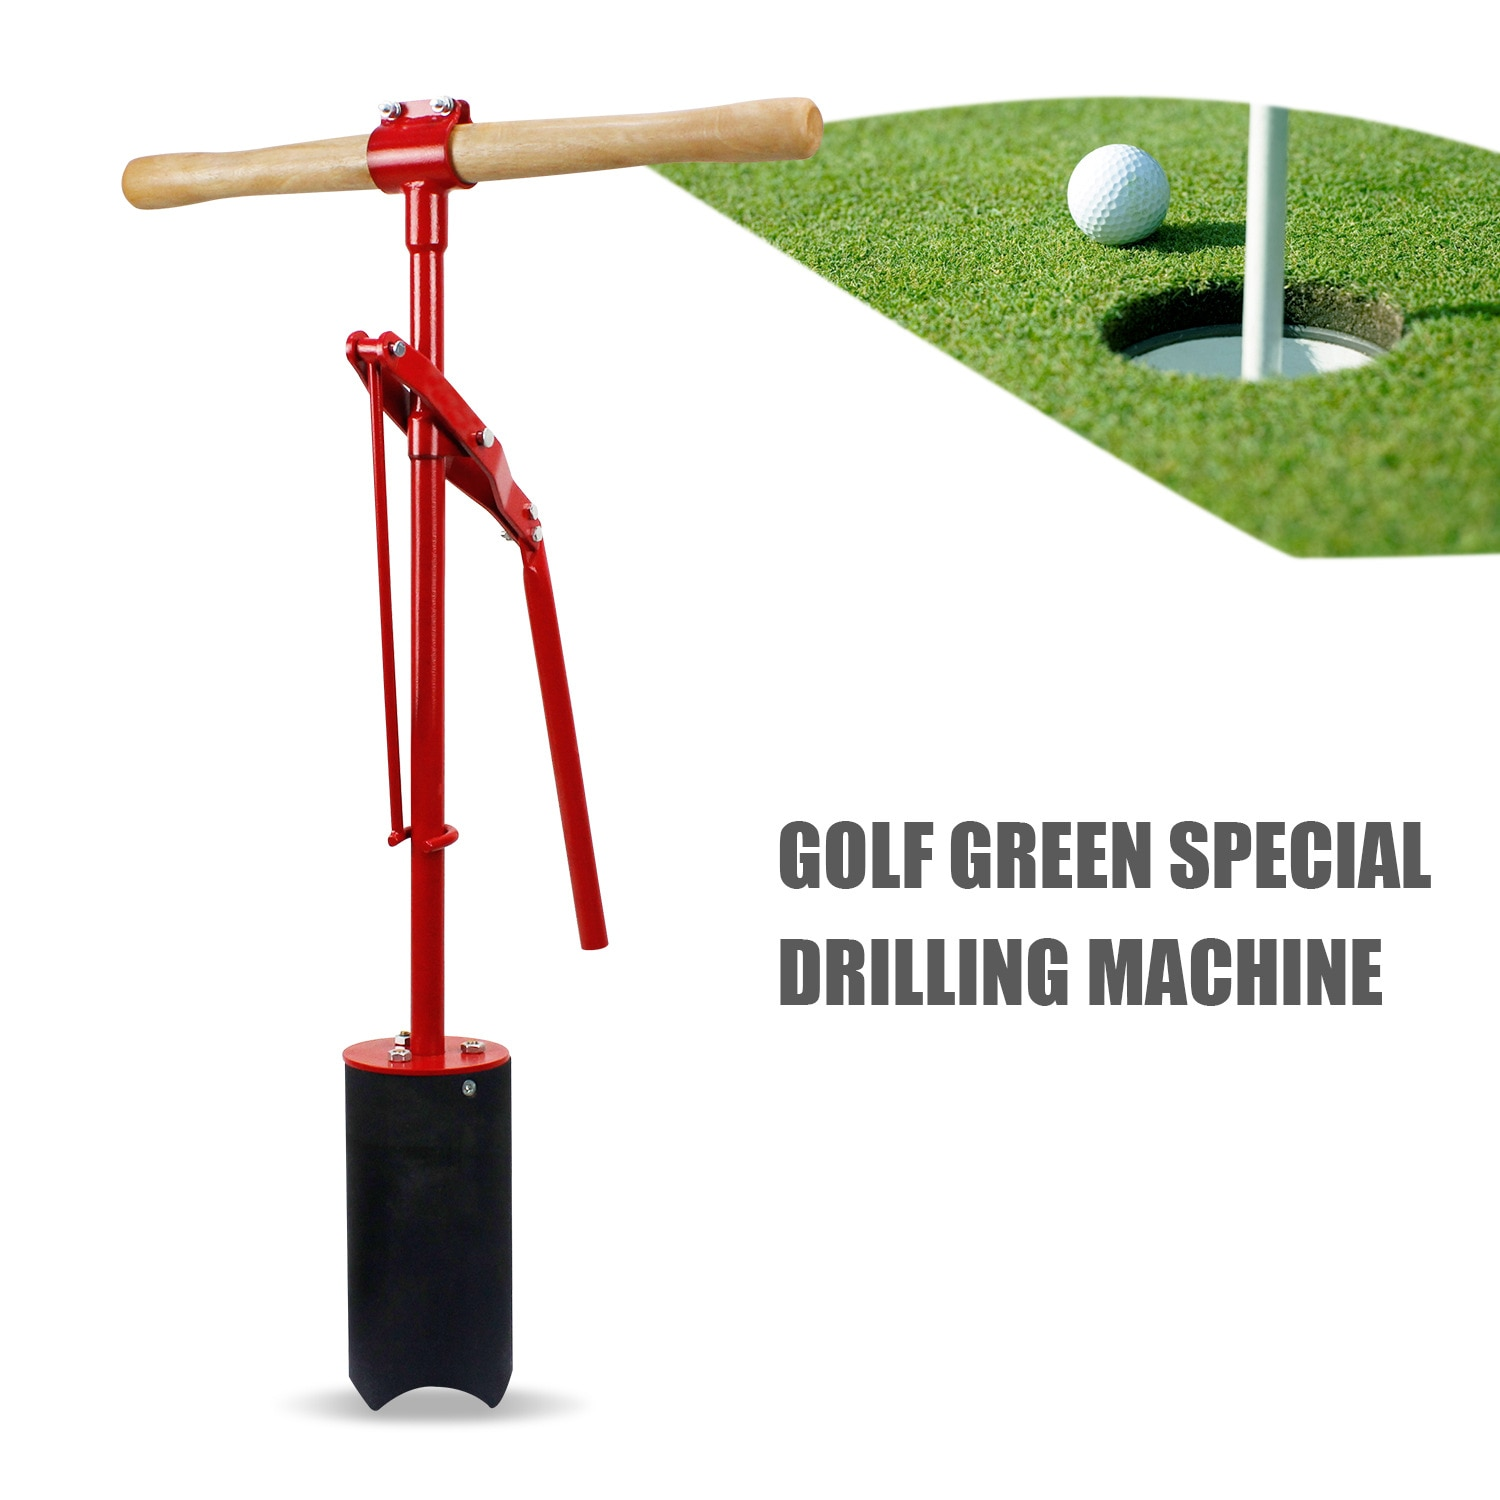 CRESTGOLF Putting Green Lever Action Hole Cutters Punch Machine Golf Green Special Drilling Machine with Manual Operation